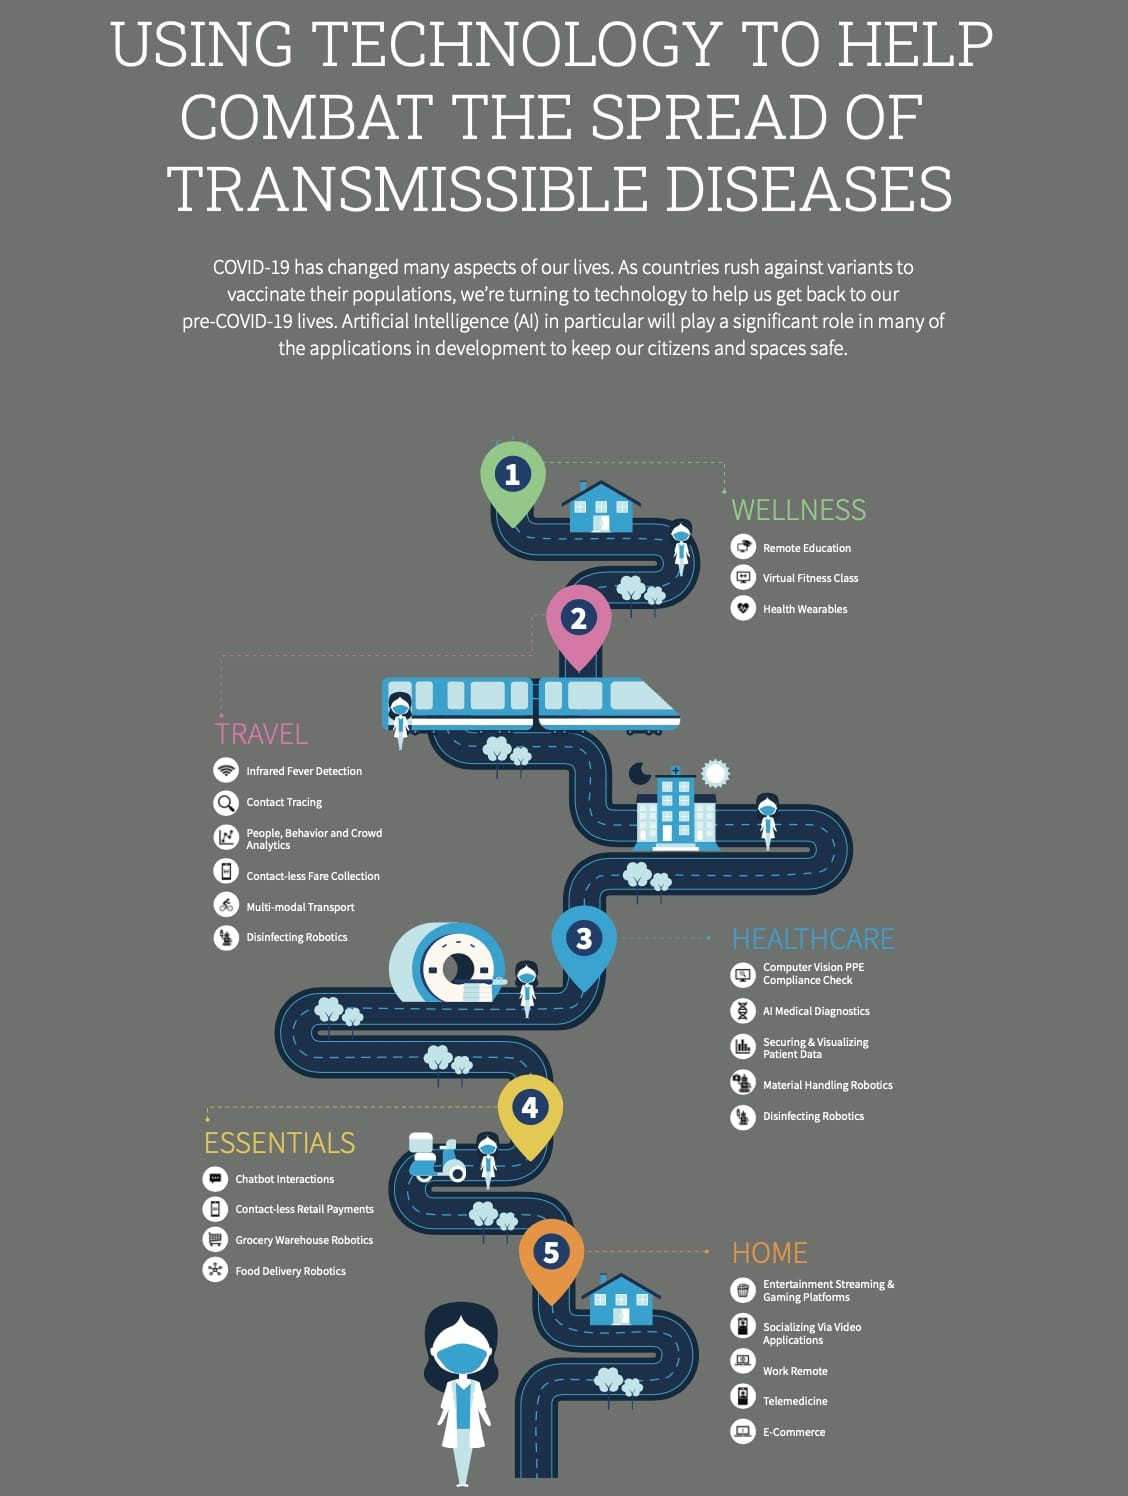 Using Technology to Combat the Spread of Transmissible Disesases